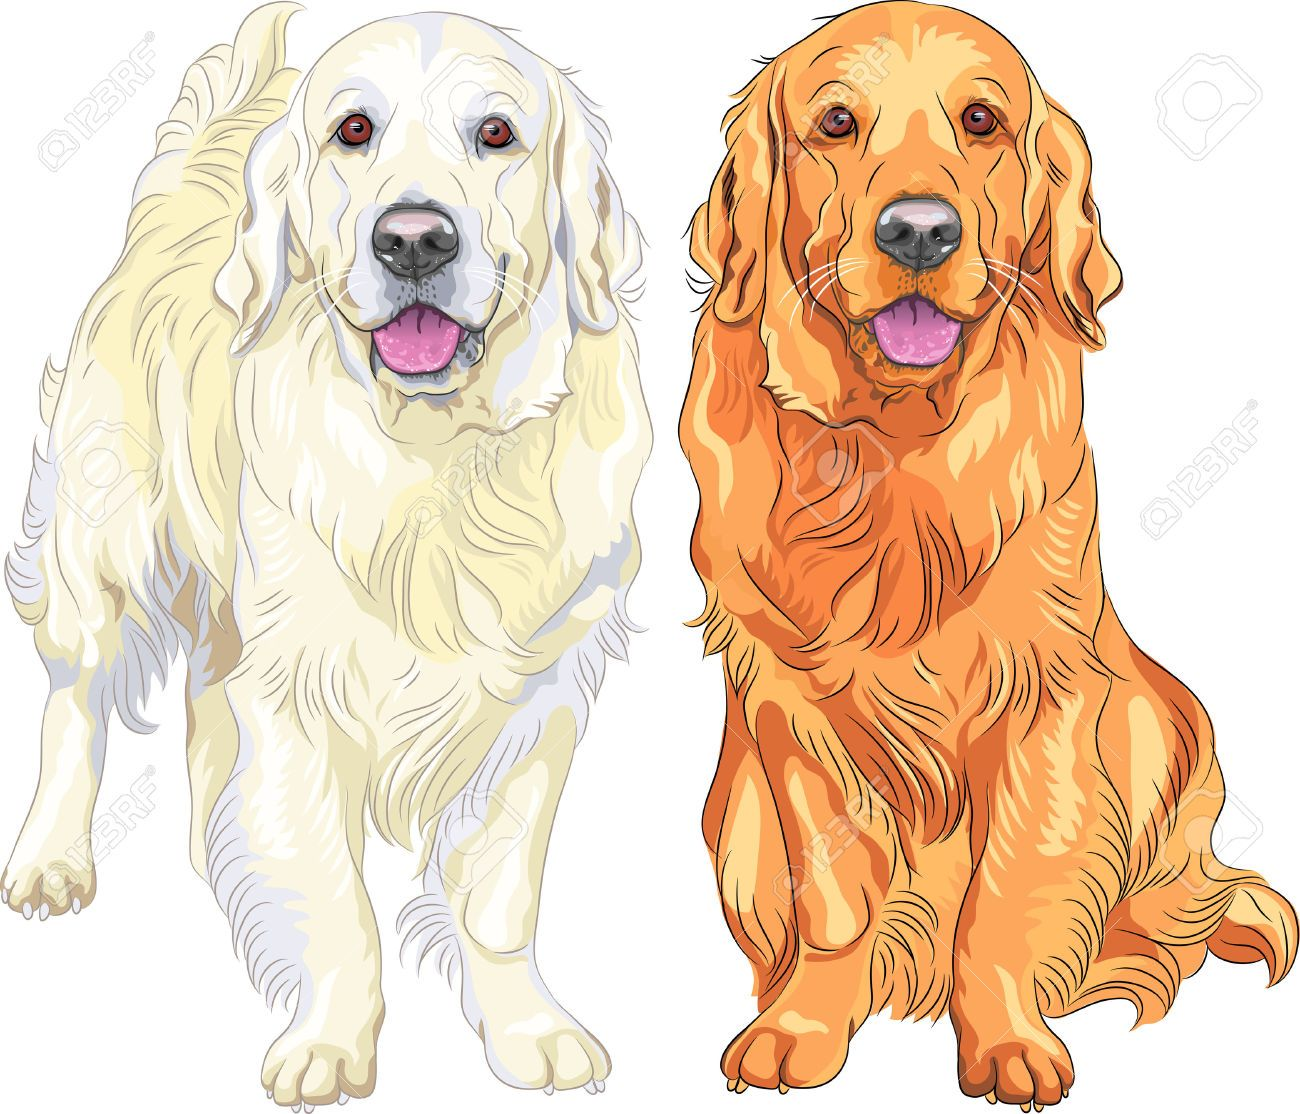 Golden Retrievers Cliparts Stock Vector And Royalty Free Golden